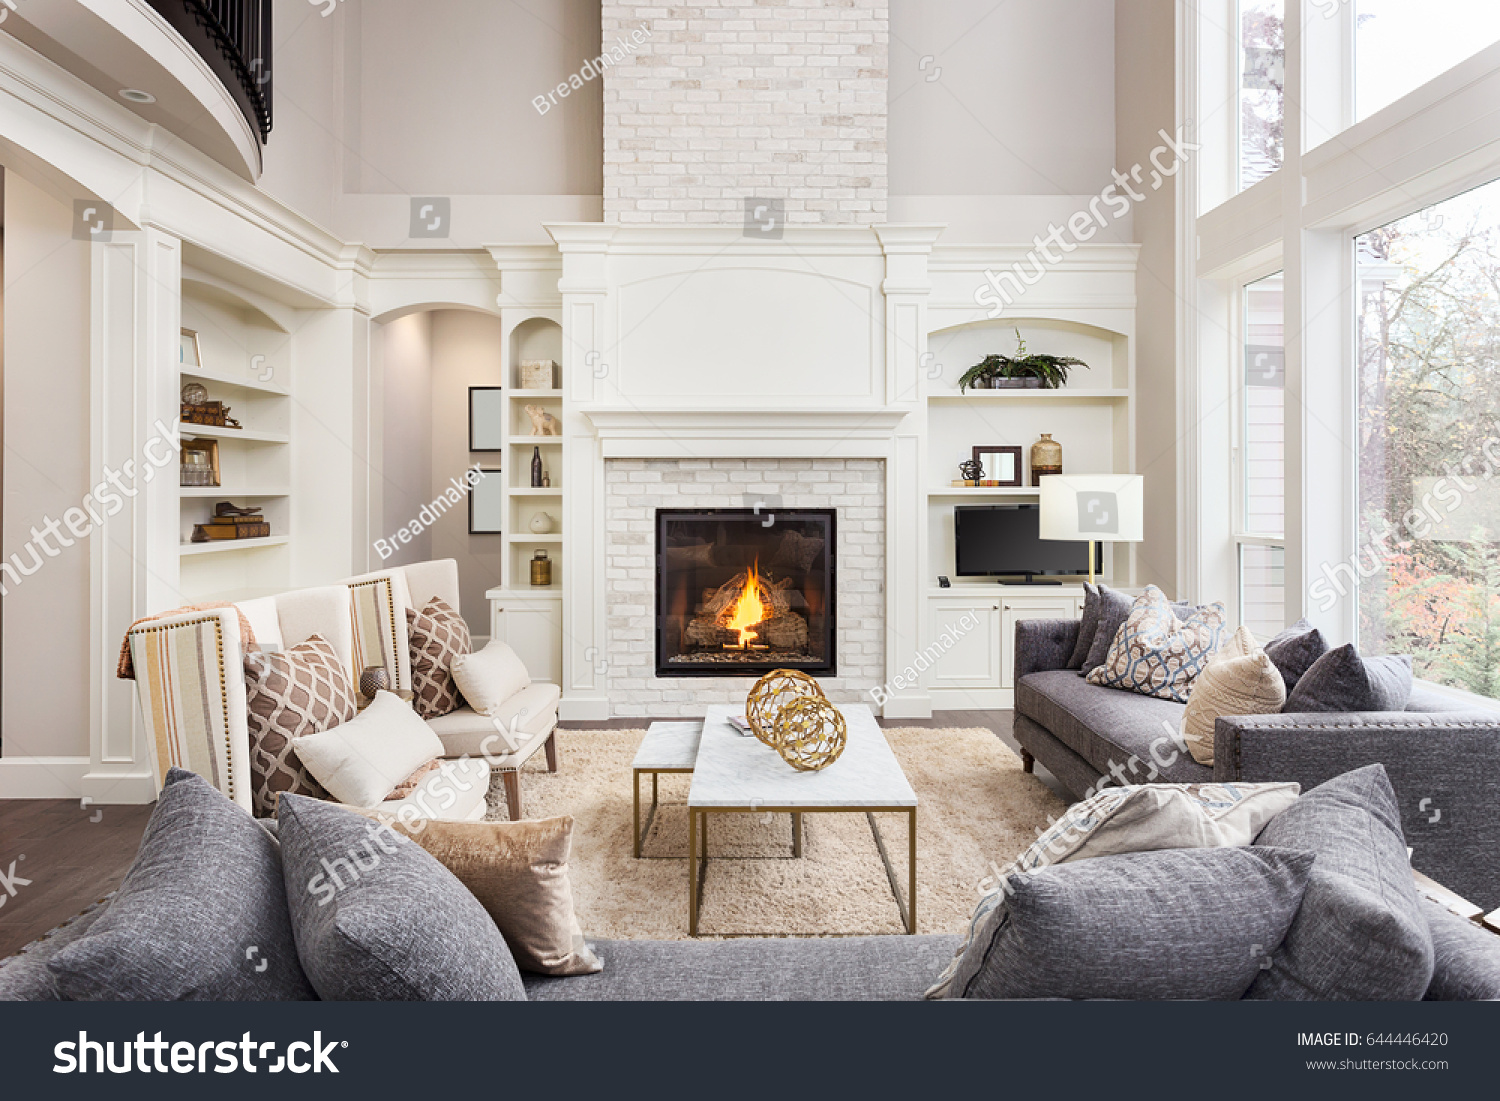 Beautiful Living Room Interior Hardwood Floors 644446420 Shutterstock